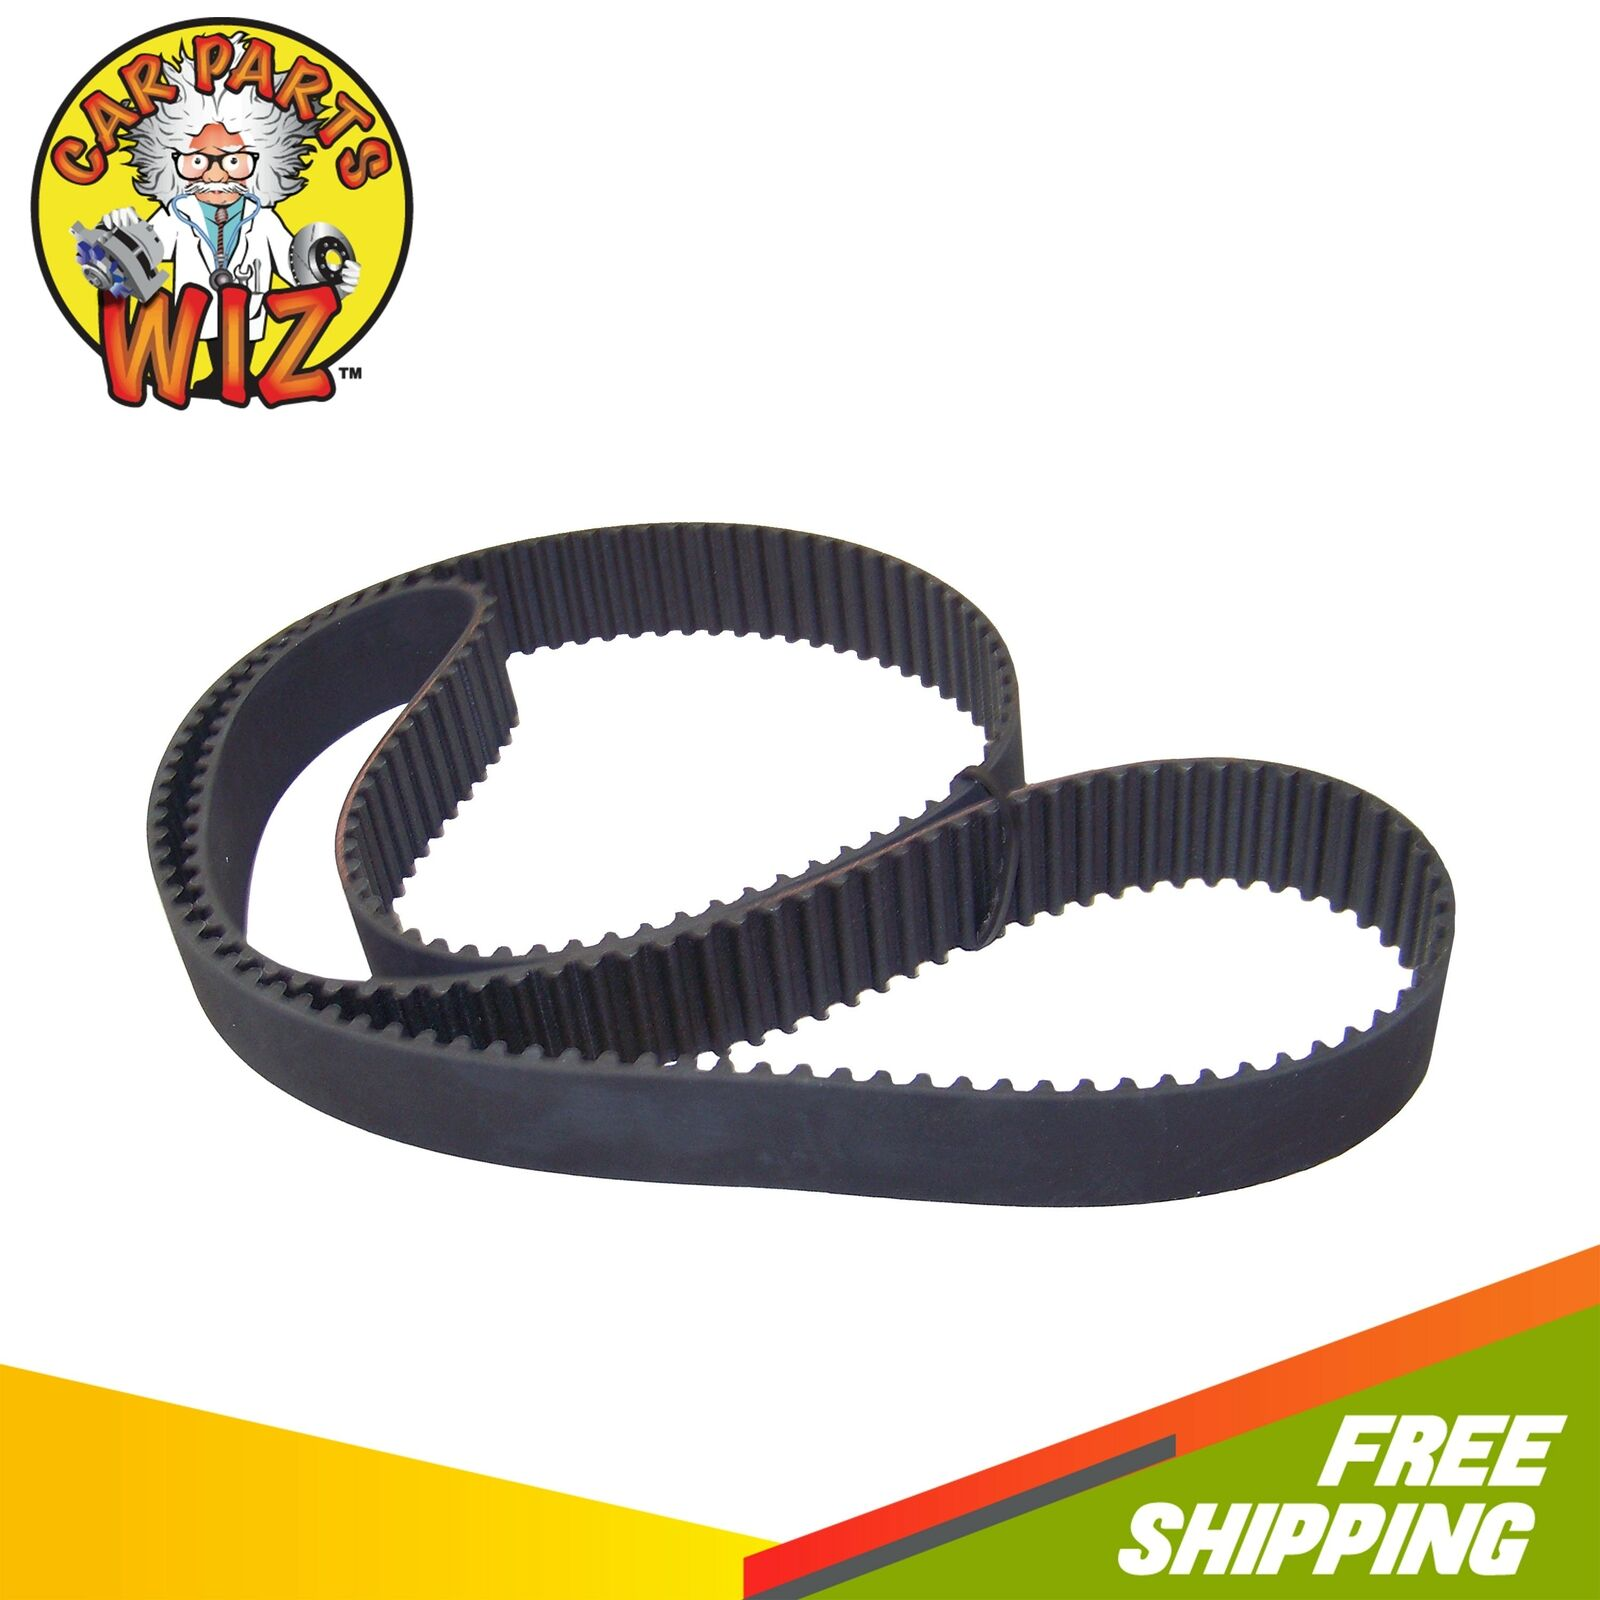 Timing Belt Fits 95 04 Toyota 4runner Tacoma Tundra Pick Up 34l For 1 Of 1free Shipping